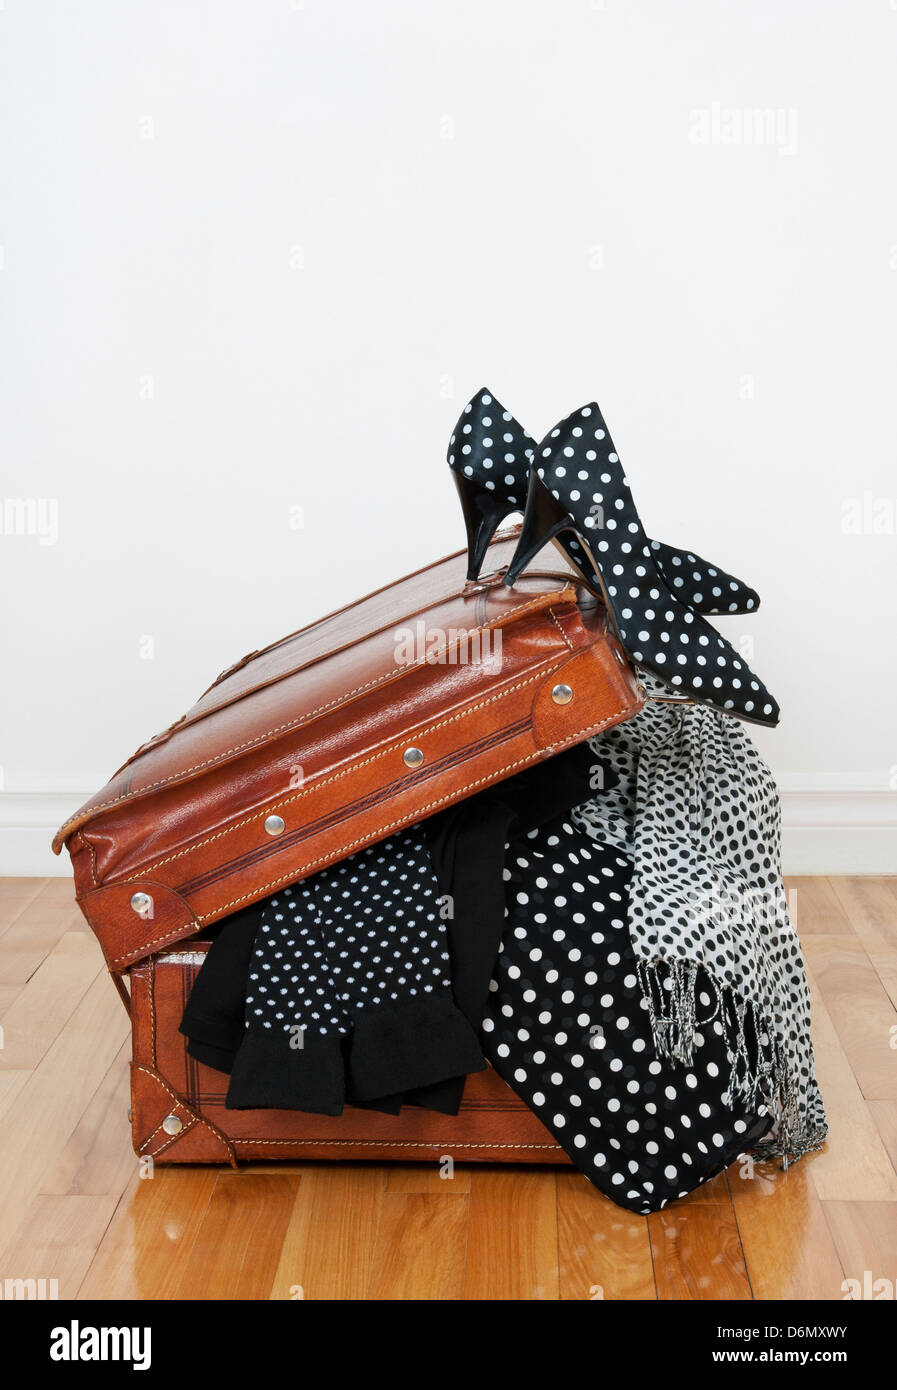 Black and white polka dot clothes and shoes in a vintage leather suitcase. - Stock Image